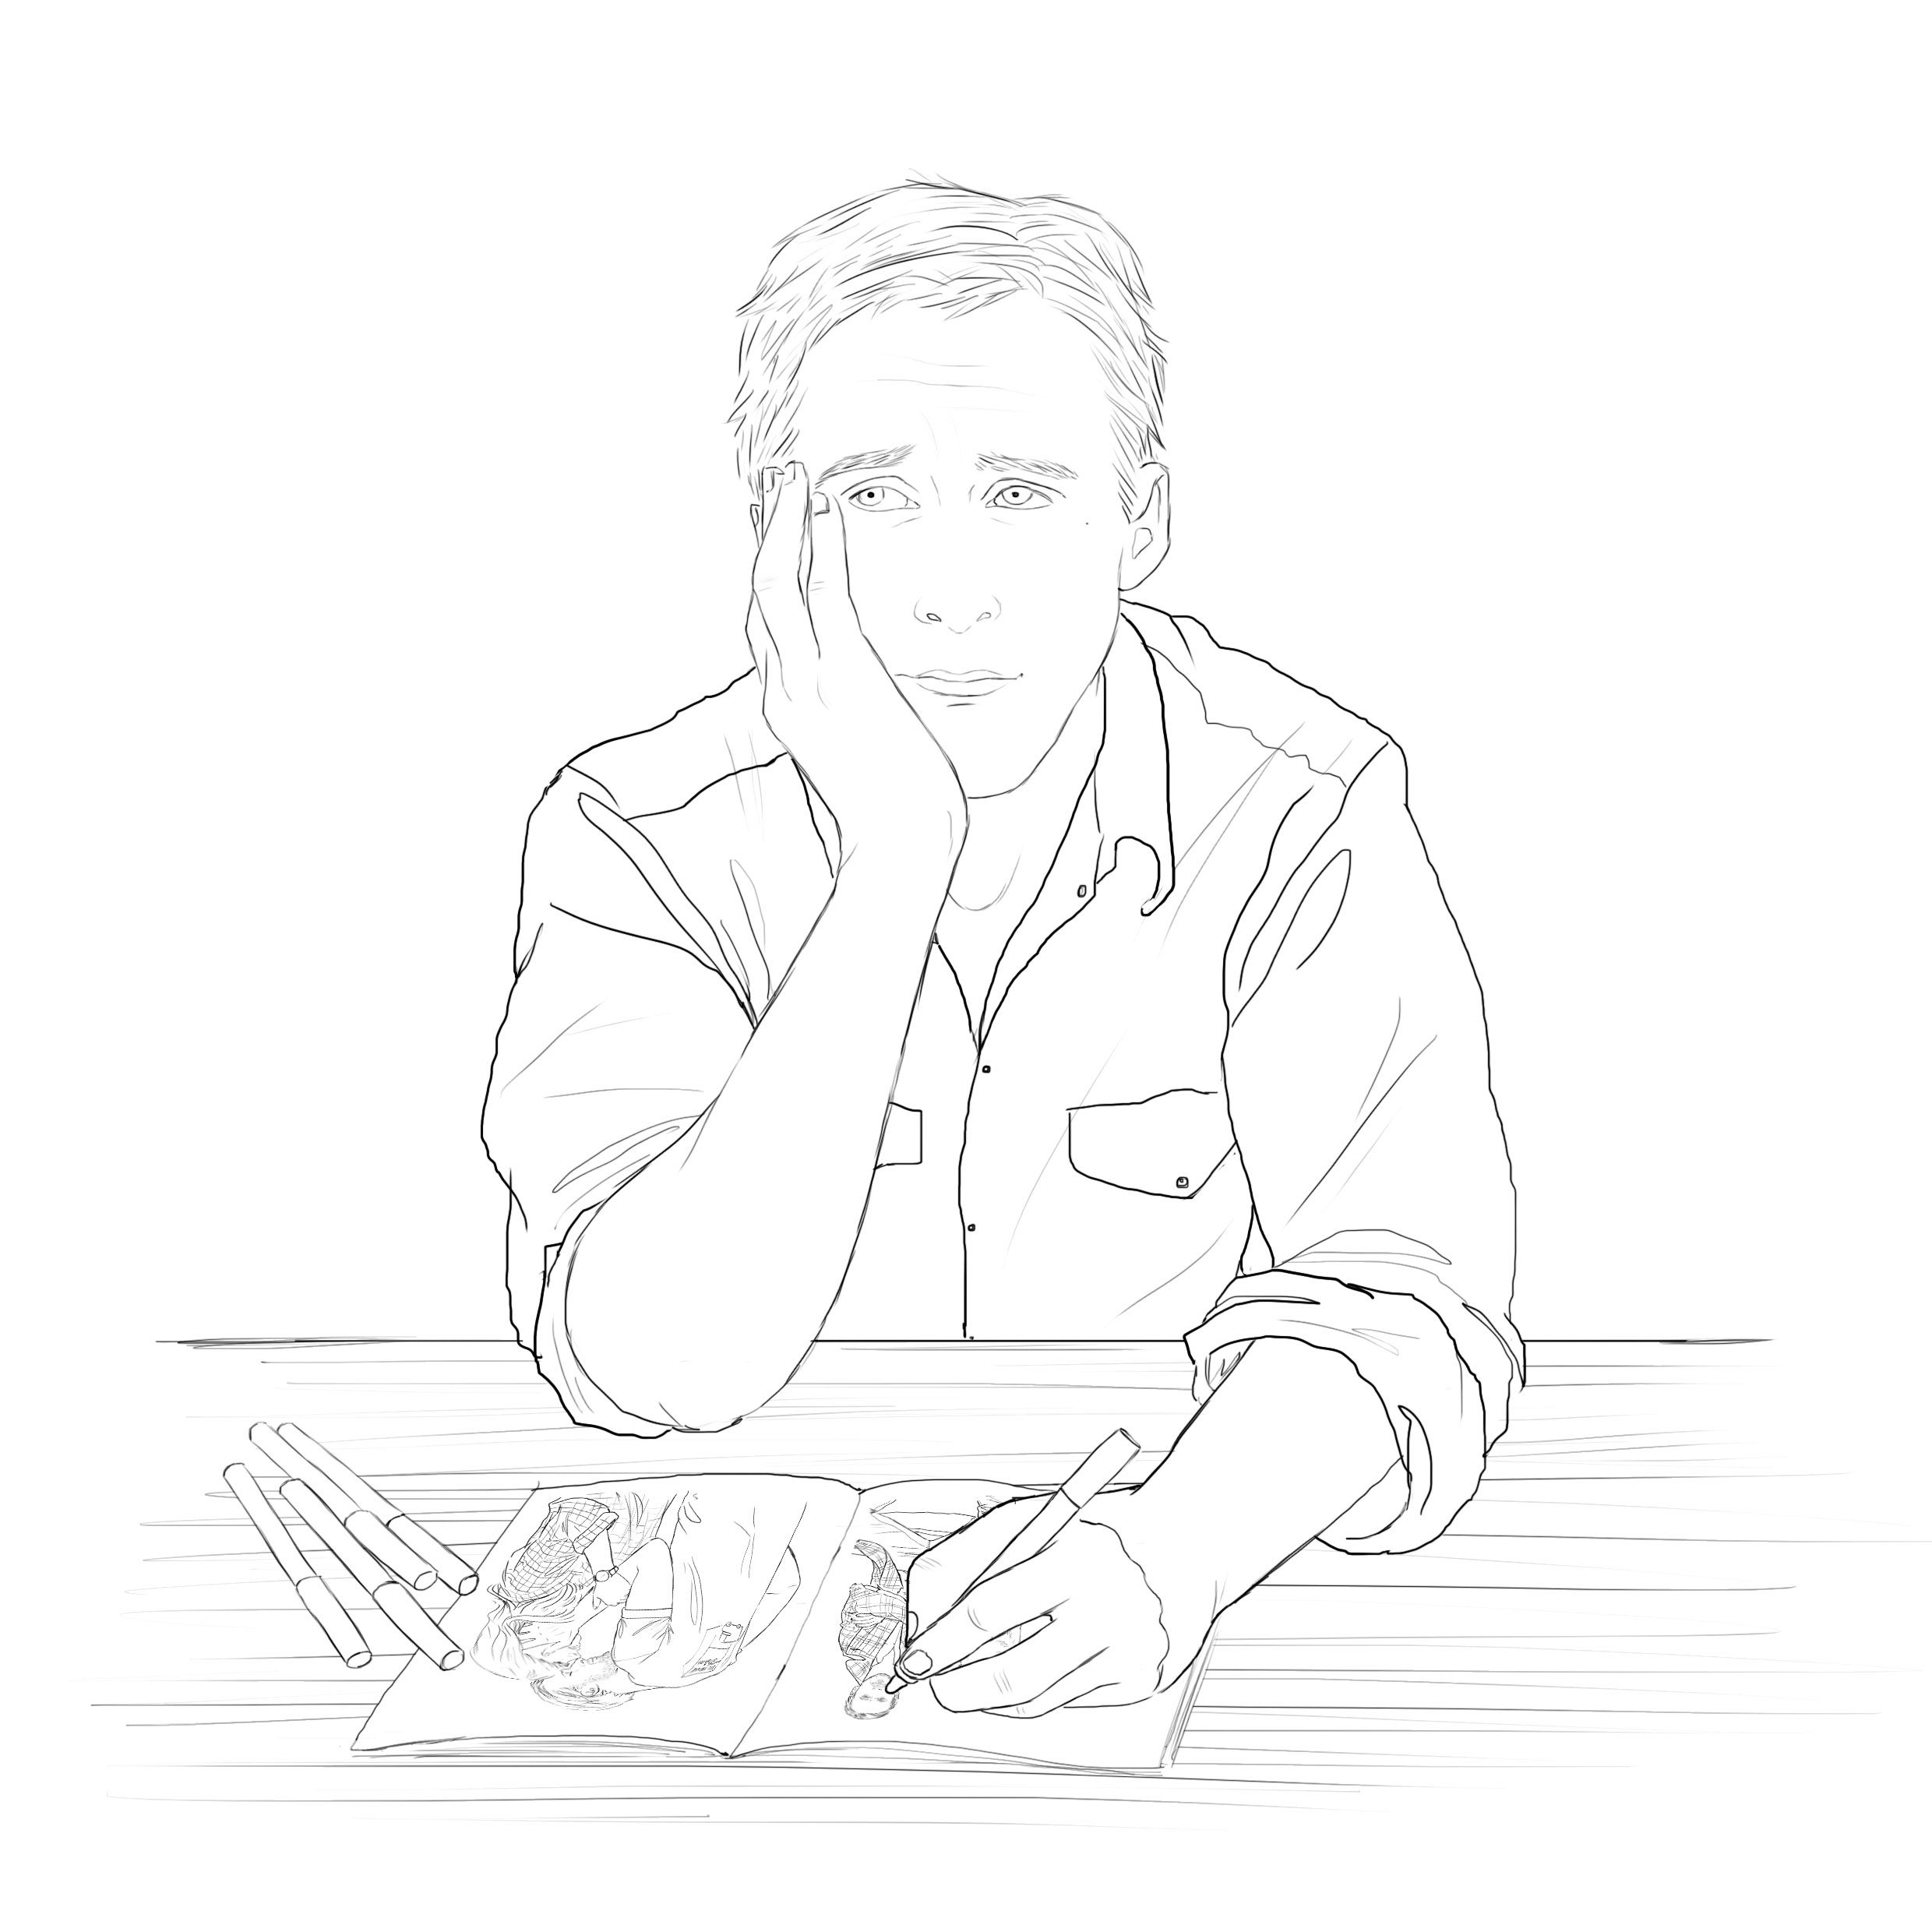 Ryan Gosling Colouring in Sheet. Spend some quality romantic time together with your celebrity crush. Here's a free download featuring the feminist, the knitter, the heartthrob, Ryan Gosling. Colour him good!